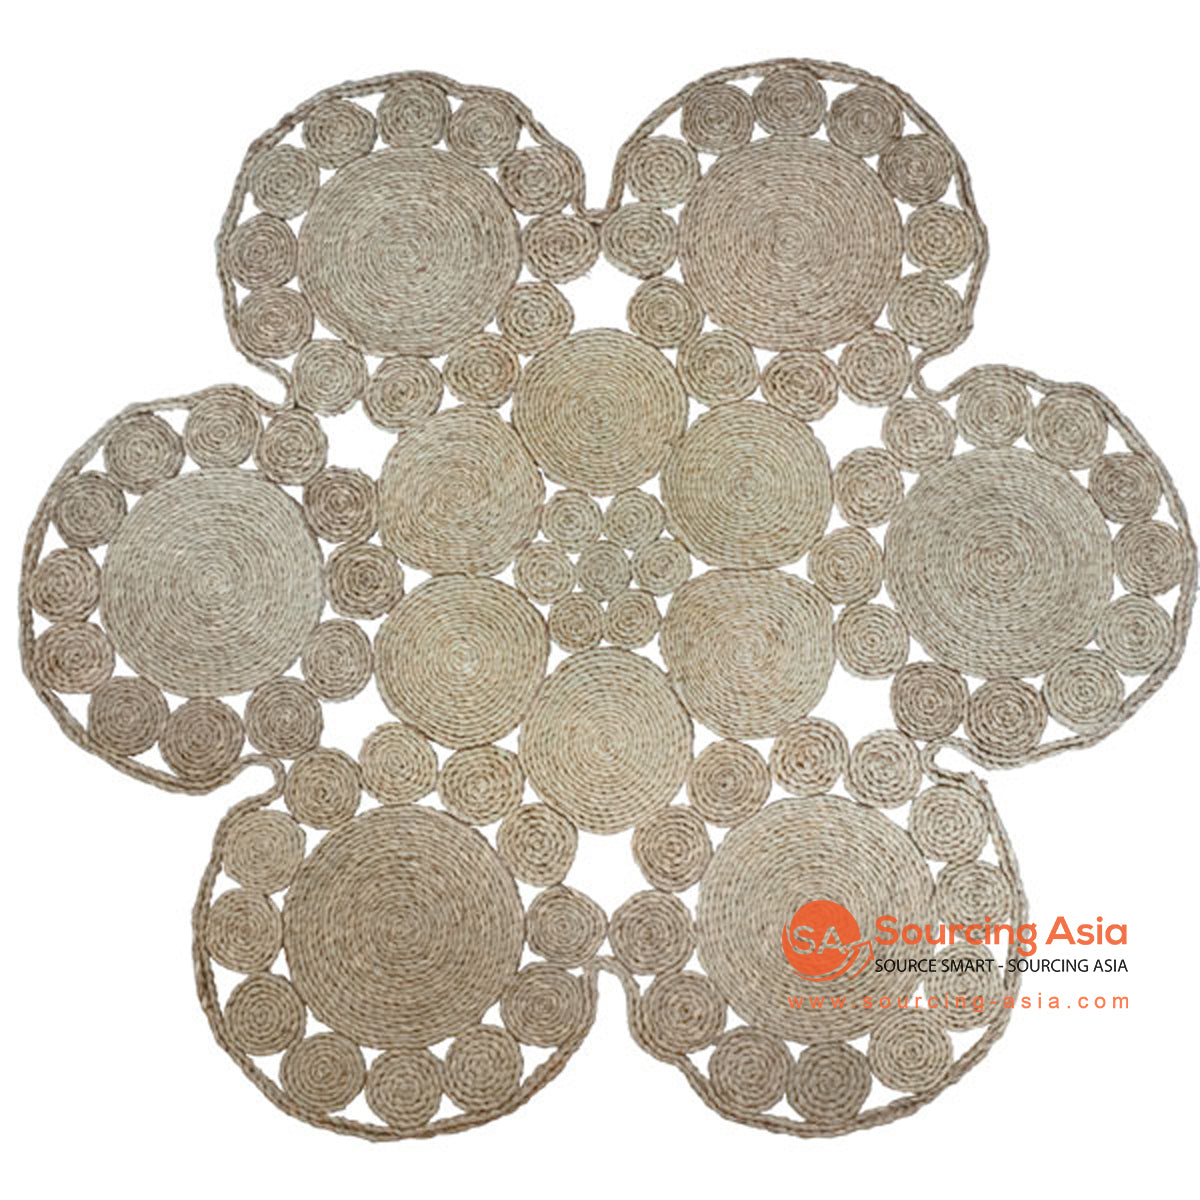 SHL190-2 NATURAL SEAGRASS DECORATIVE ROUND RUG